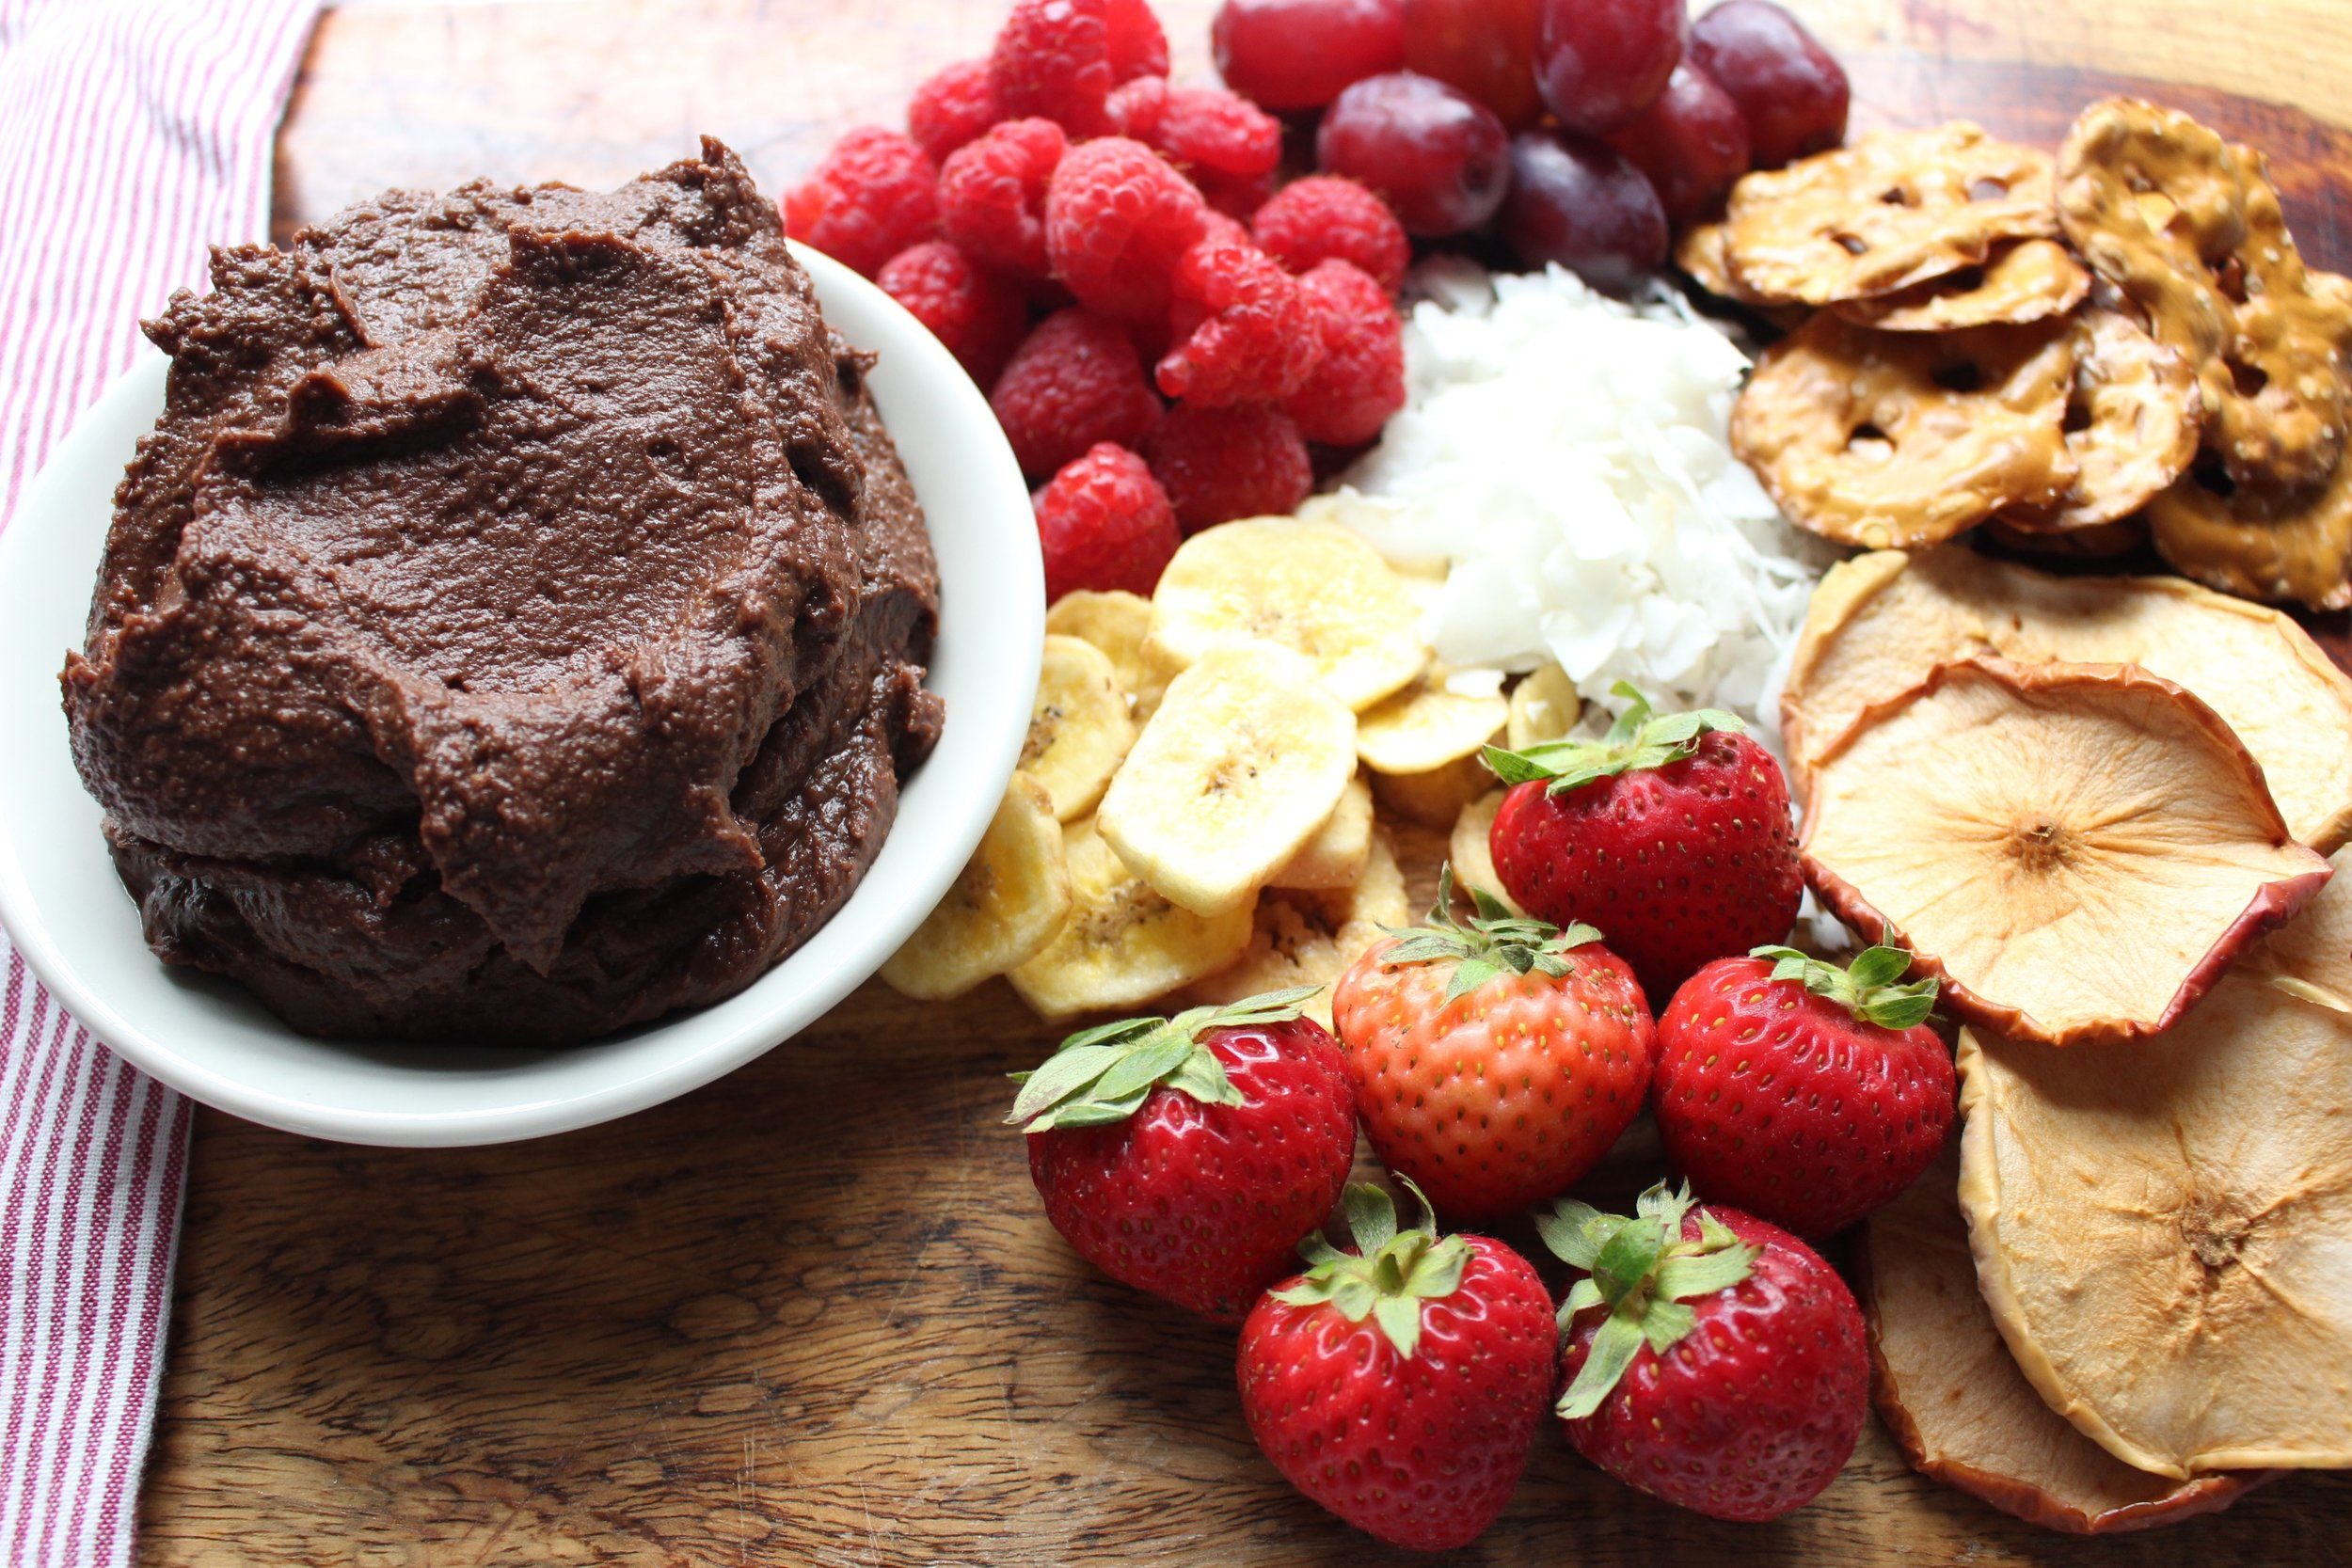 Chocolate hummus!